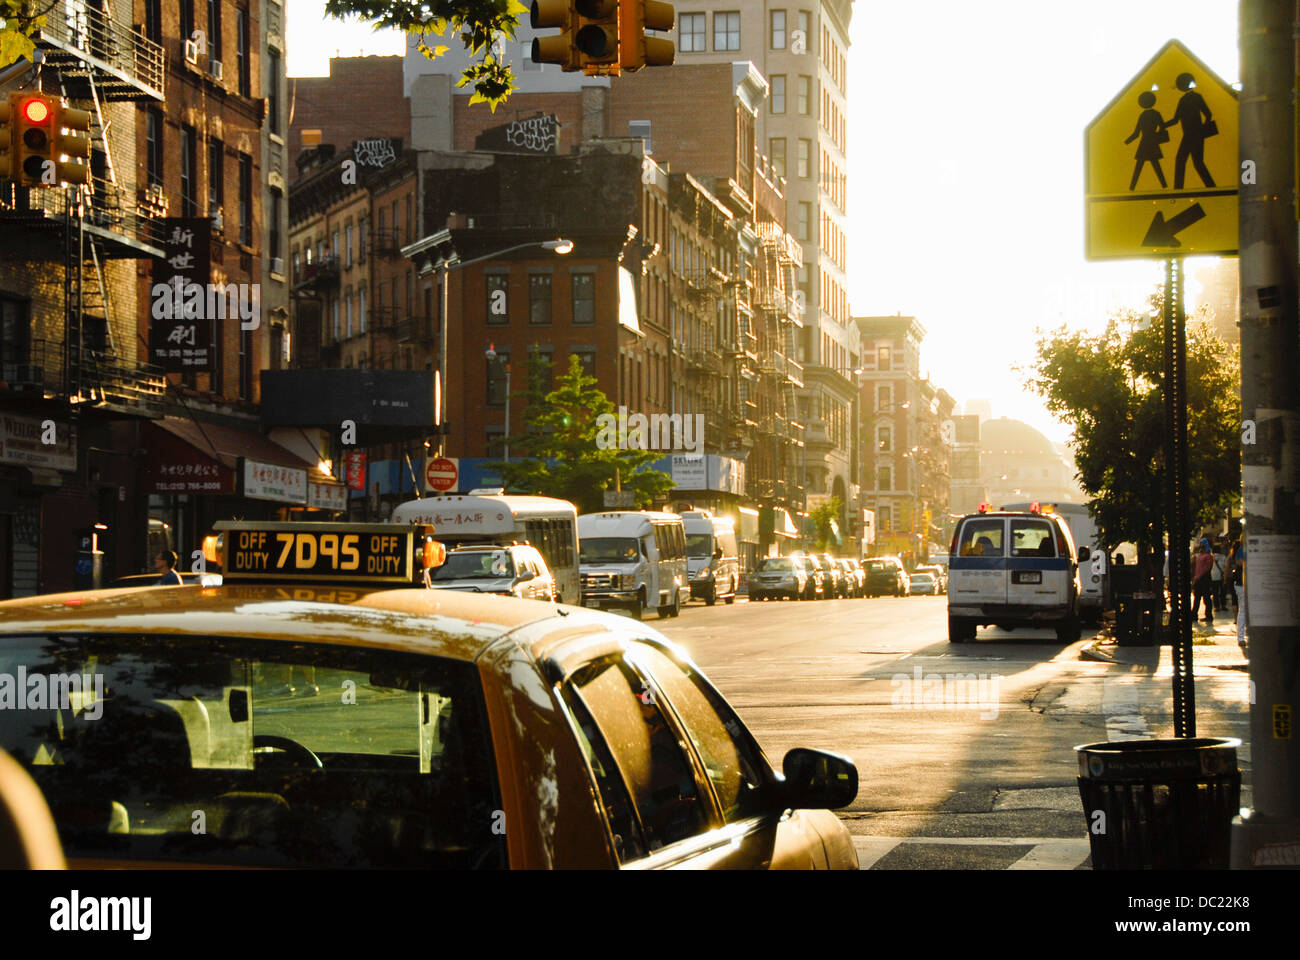 Sunlit taxi cab in street of Chinatown, Manhattan, New York, USA - Stock Image